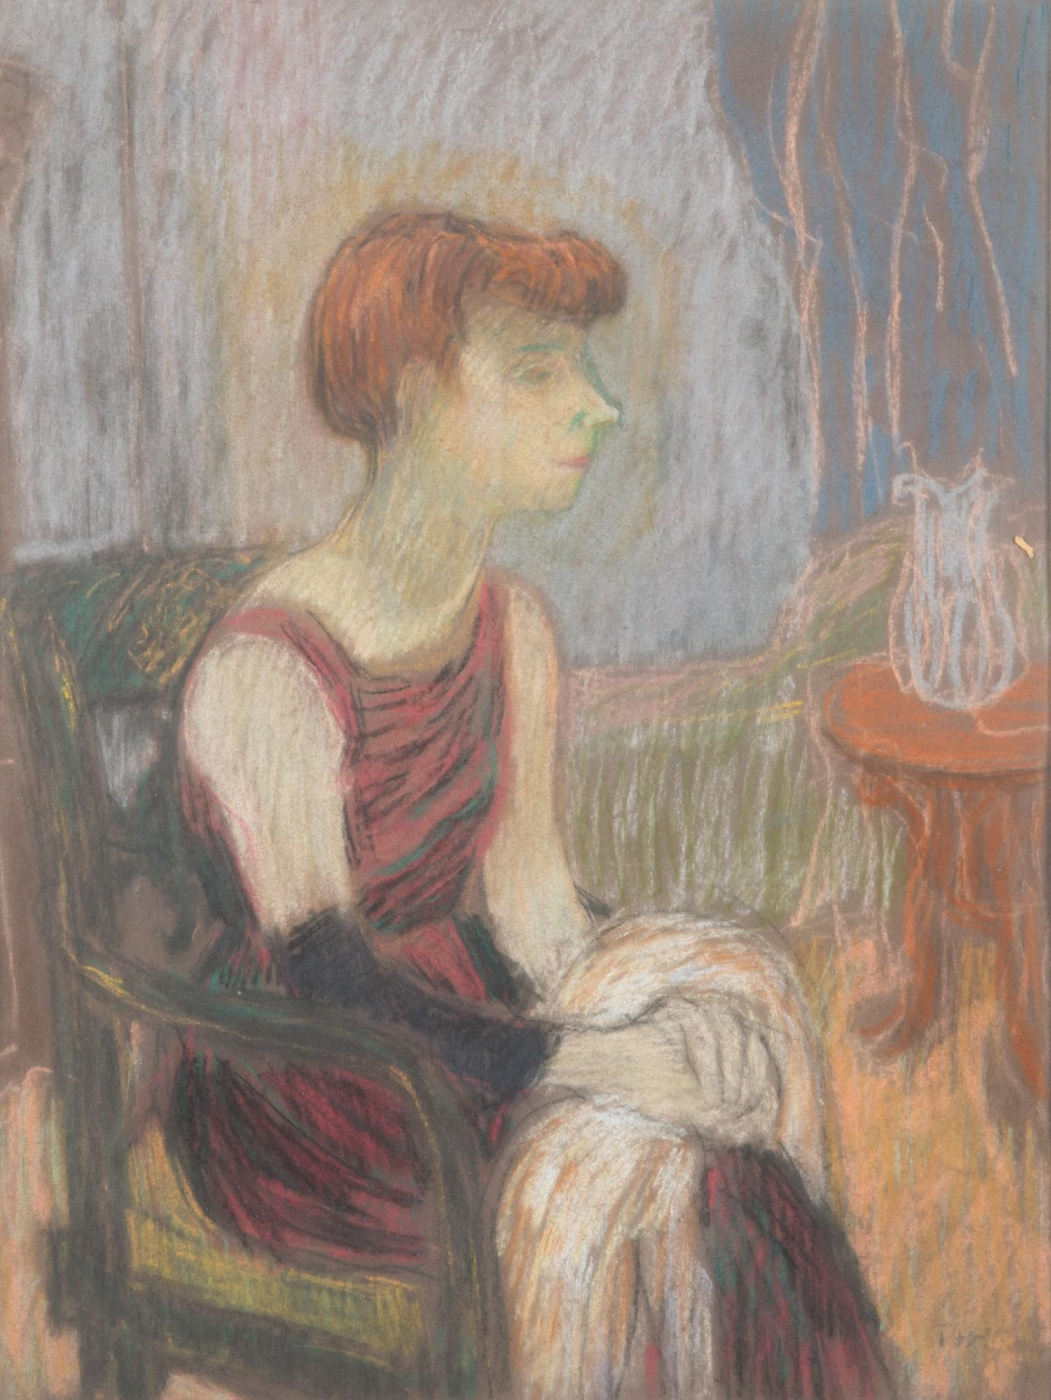 Tove Jansson. Portrait of Tuulikki Pietil